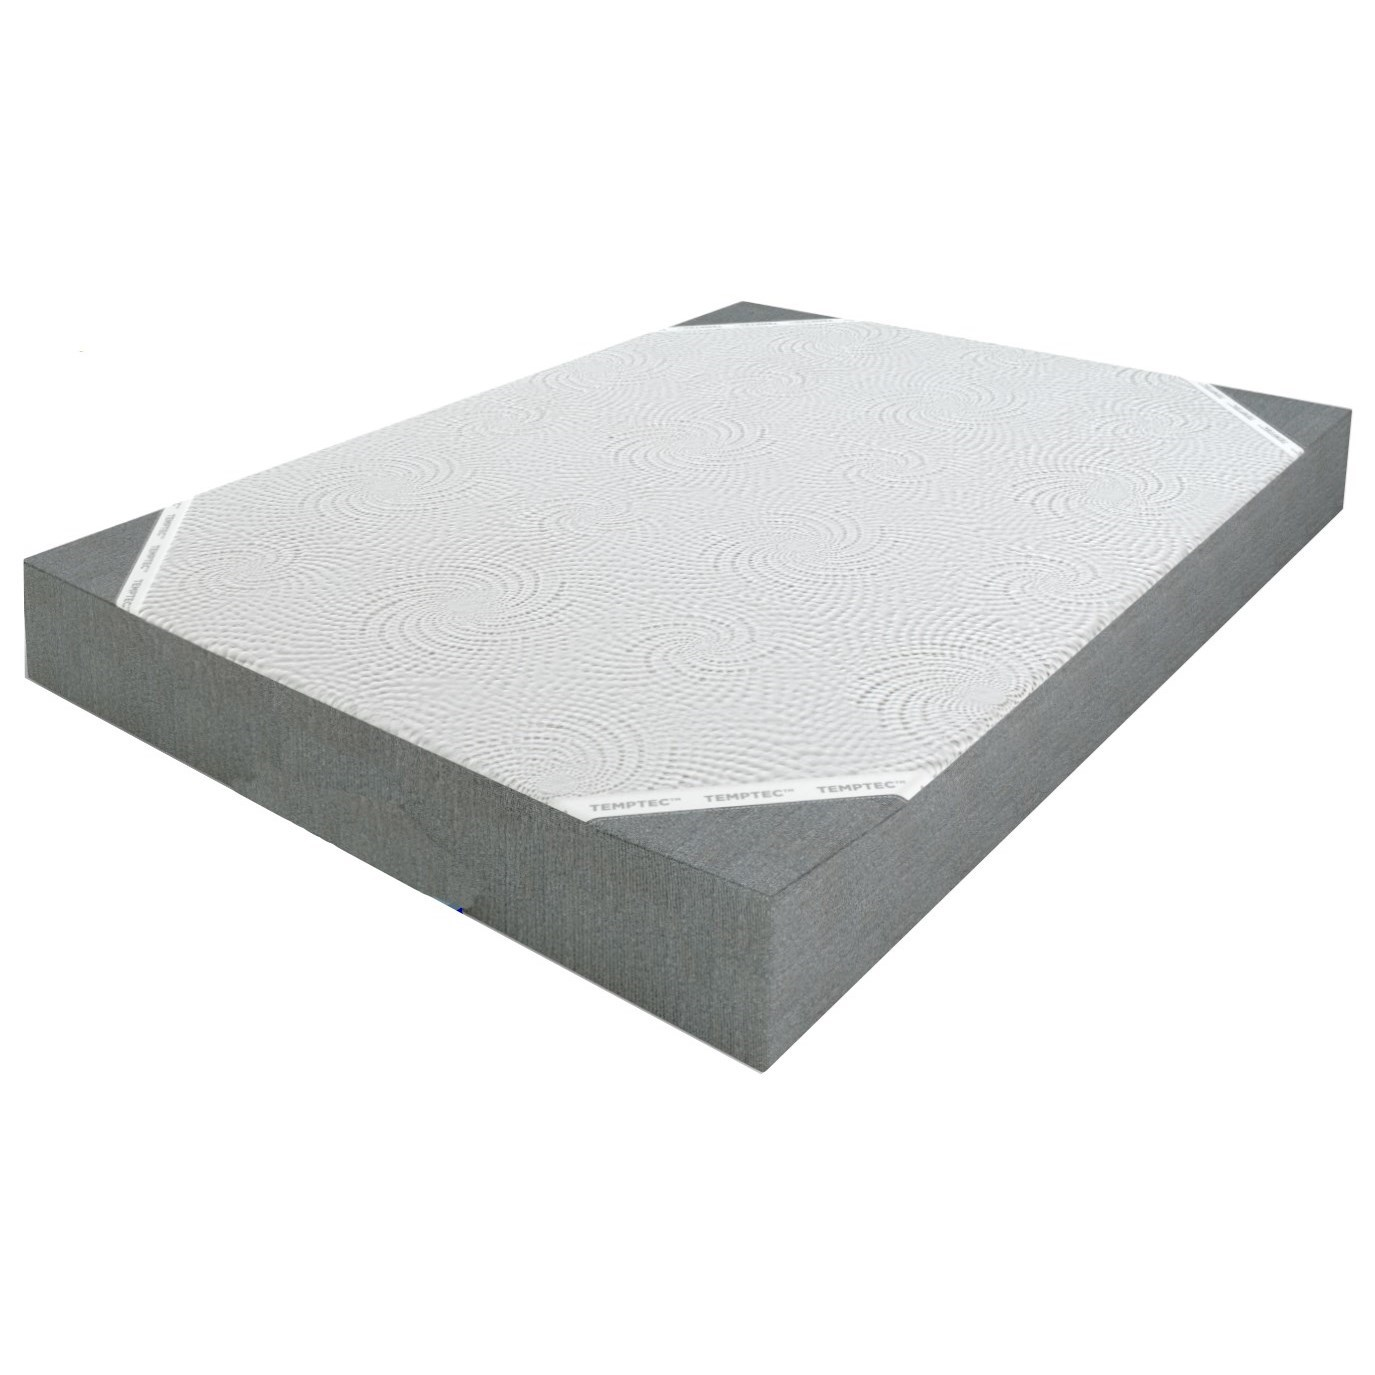 """Tranquil 8 Full 8"""" Memory Foam Mattress by Glideaway at H.L. Stephens"""